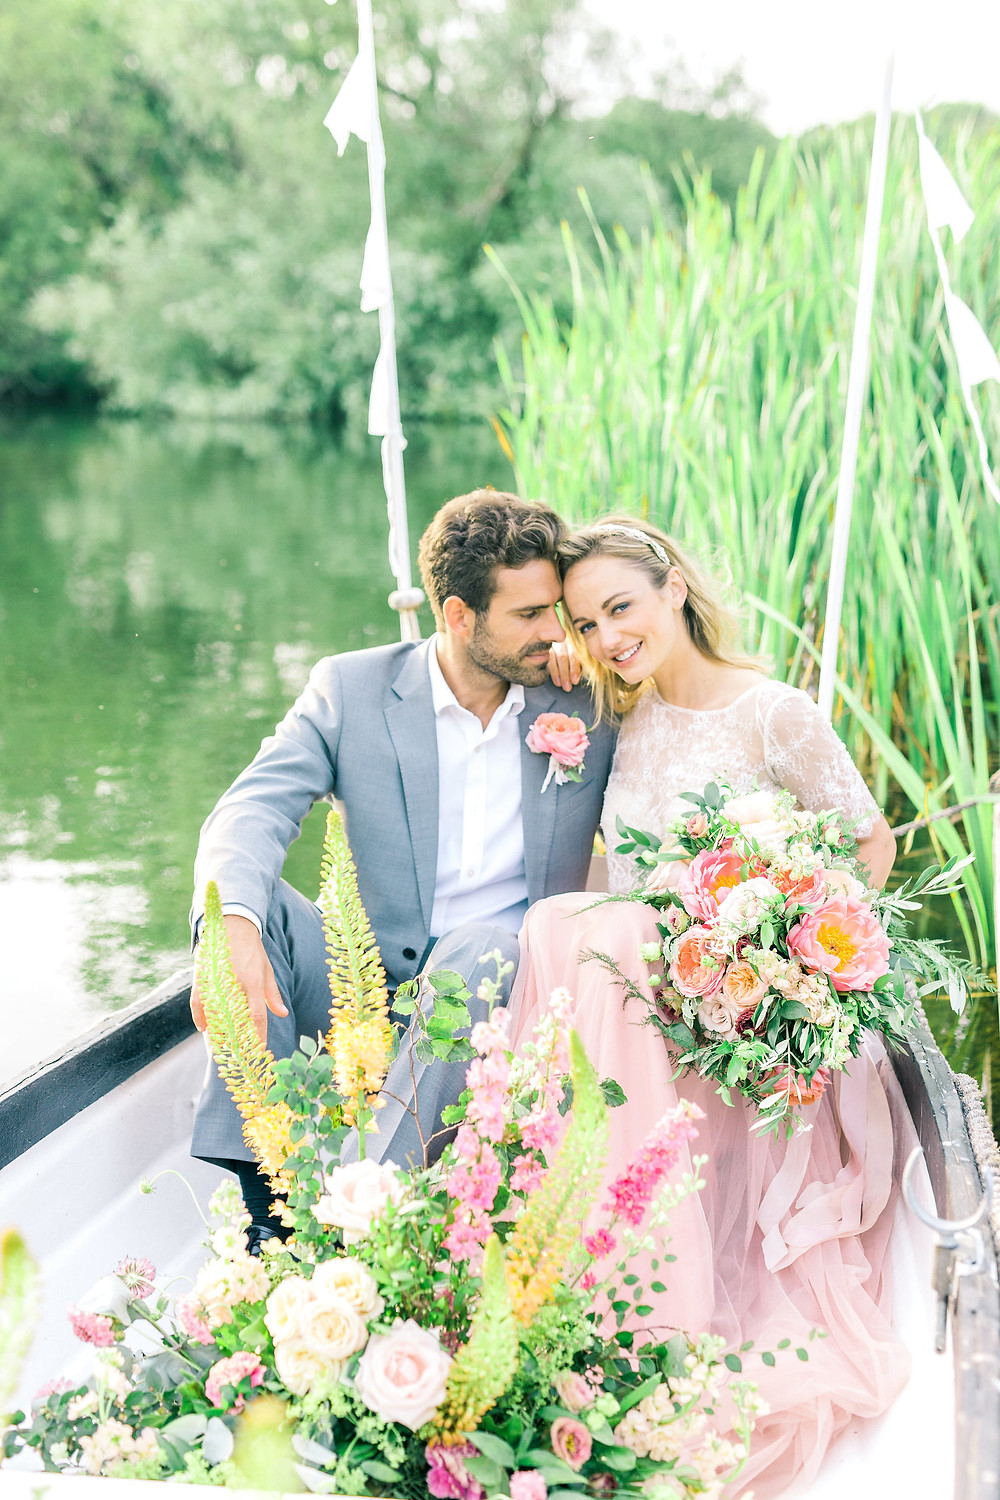 Lake photo of wedding flowers with bride and groom